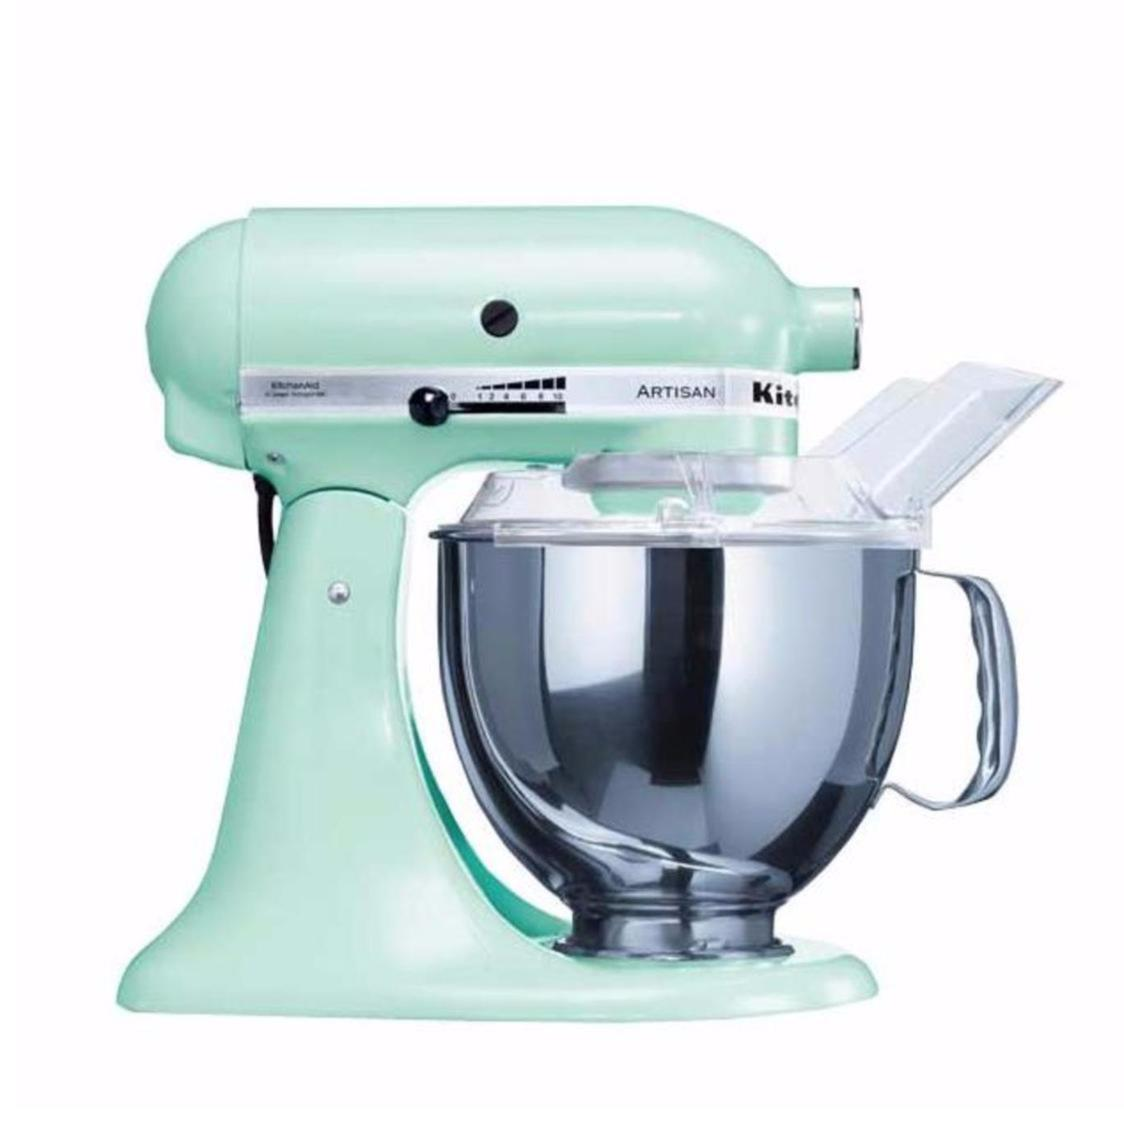 KitchenAid Artisan Series Tilt-Head Stand Mixer 5KSM150PSBIC